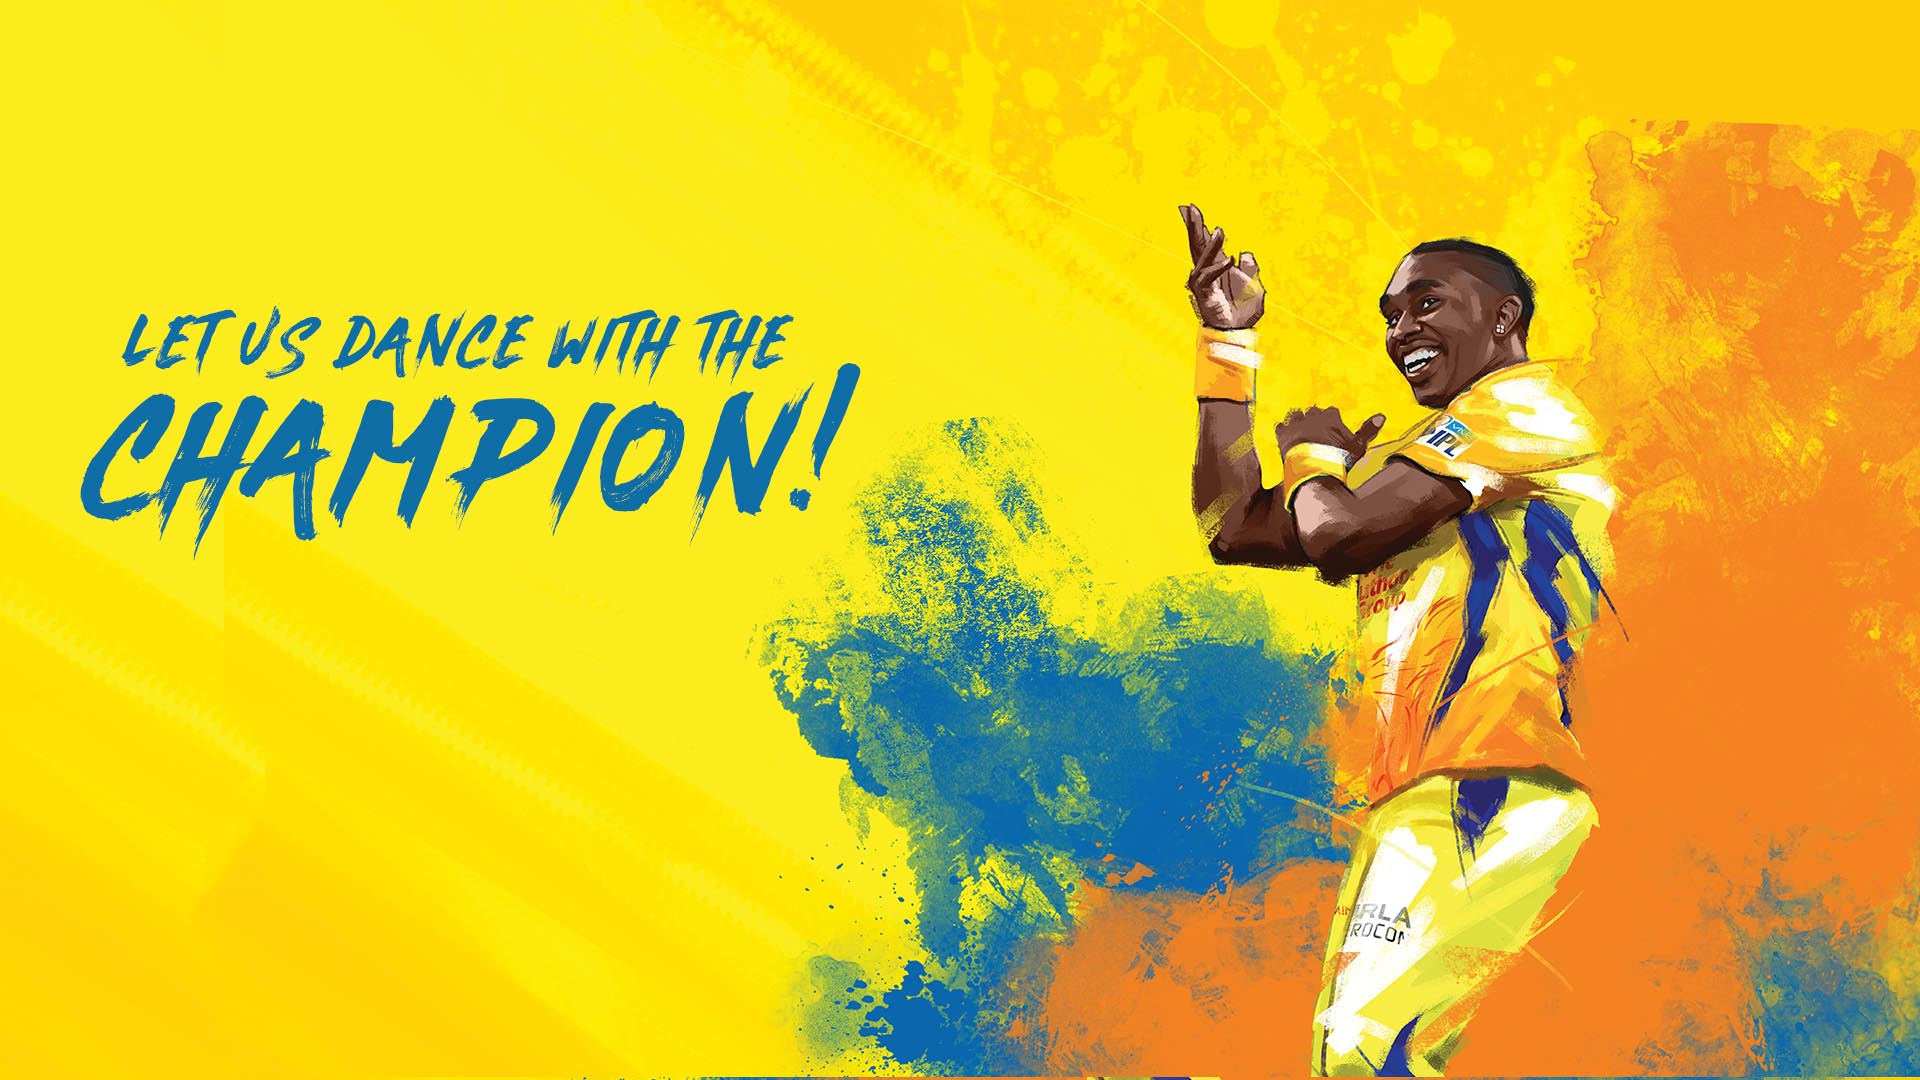 chennai super kings wallpapers top 45 csk wallpapers download 2020 getty wallpapers